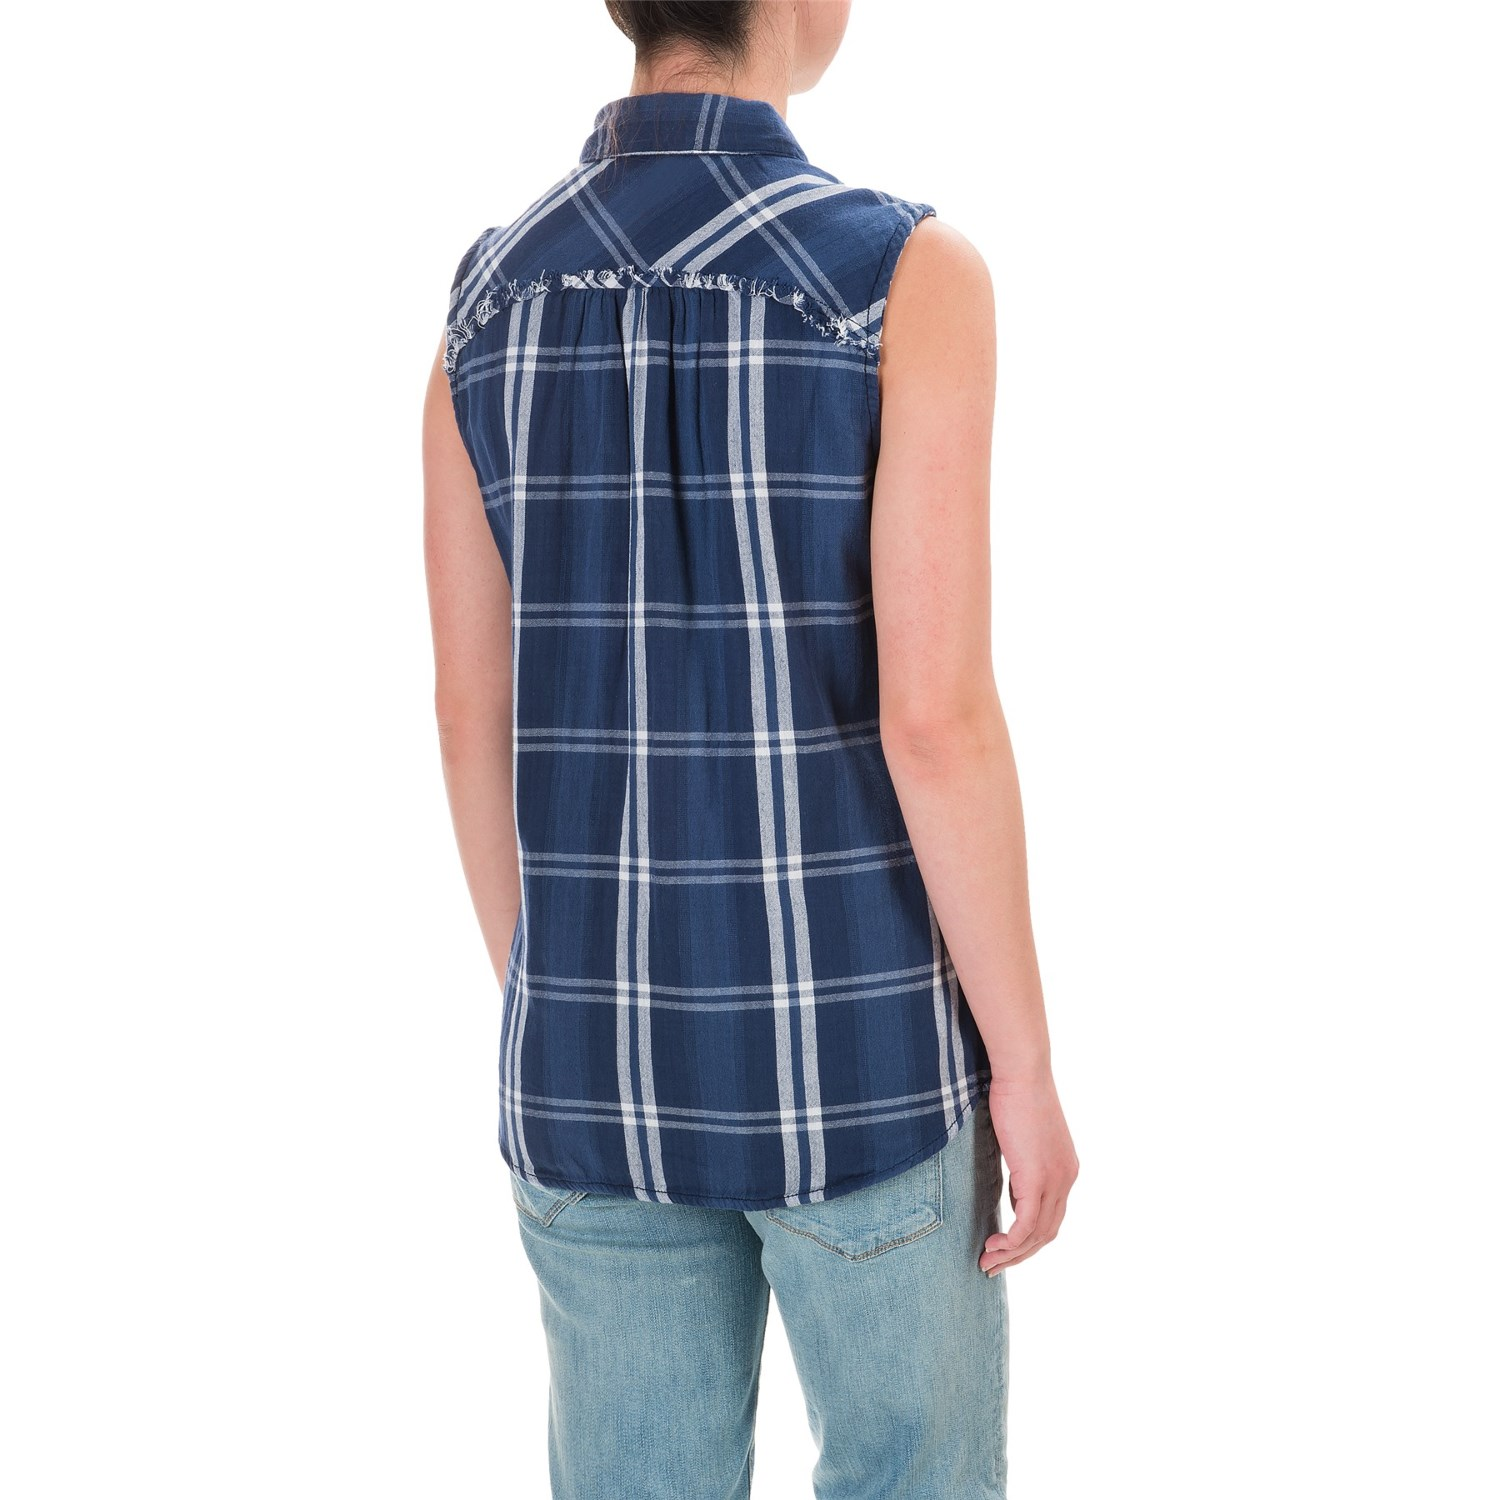 Find sleeveless flannel at ShopStyle. Shop the latest collection of sleeveless flannel from the most popular stores - all in one place.